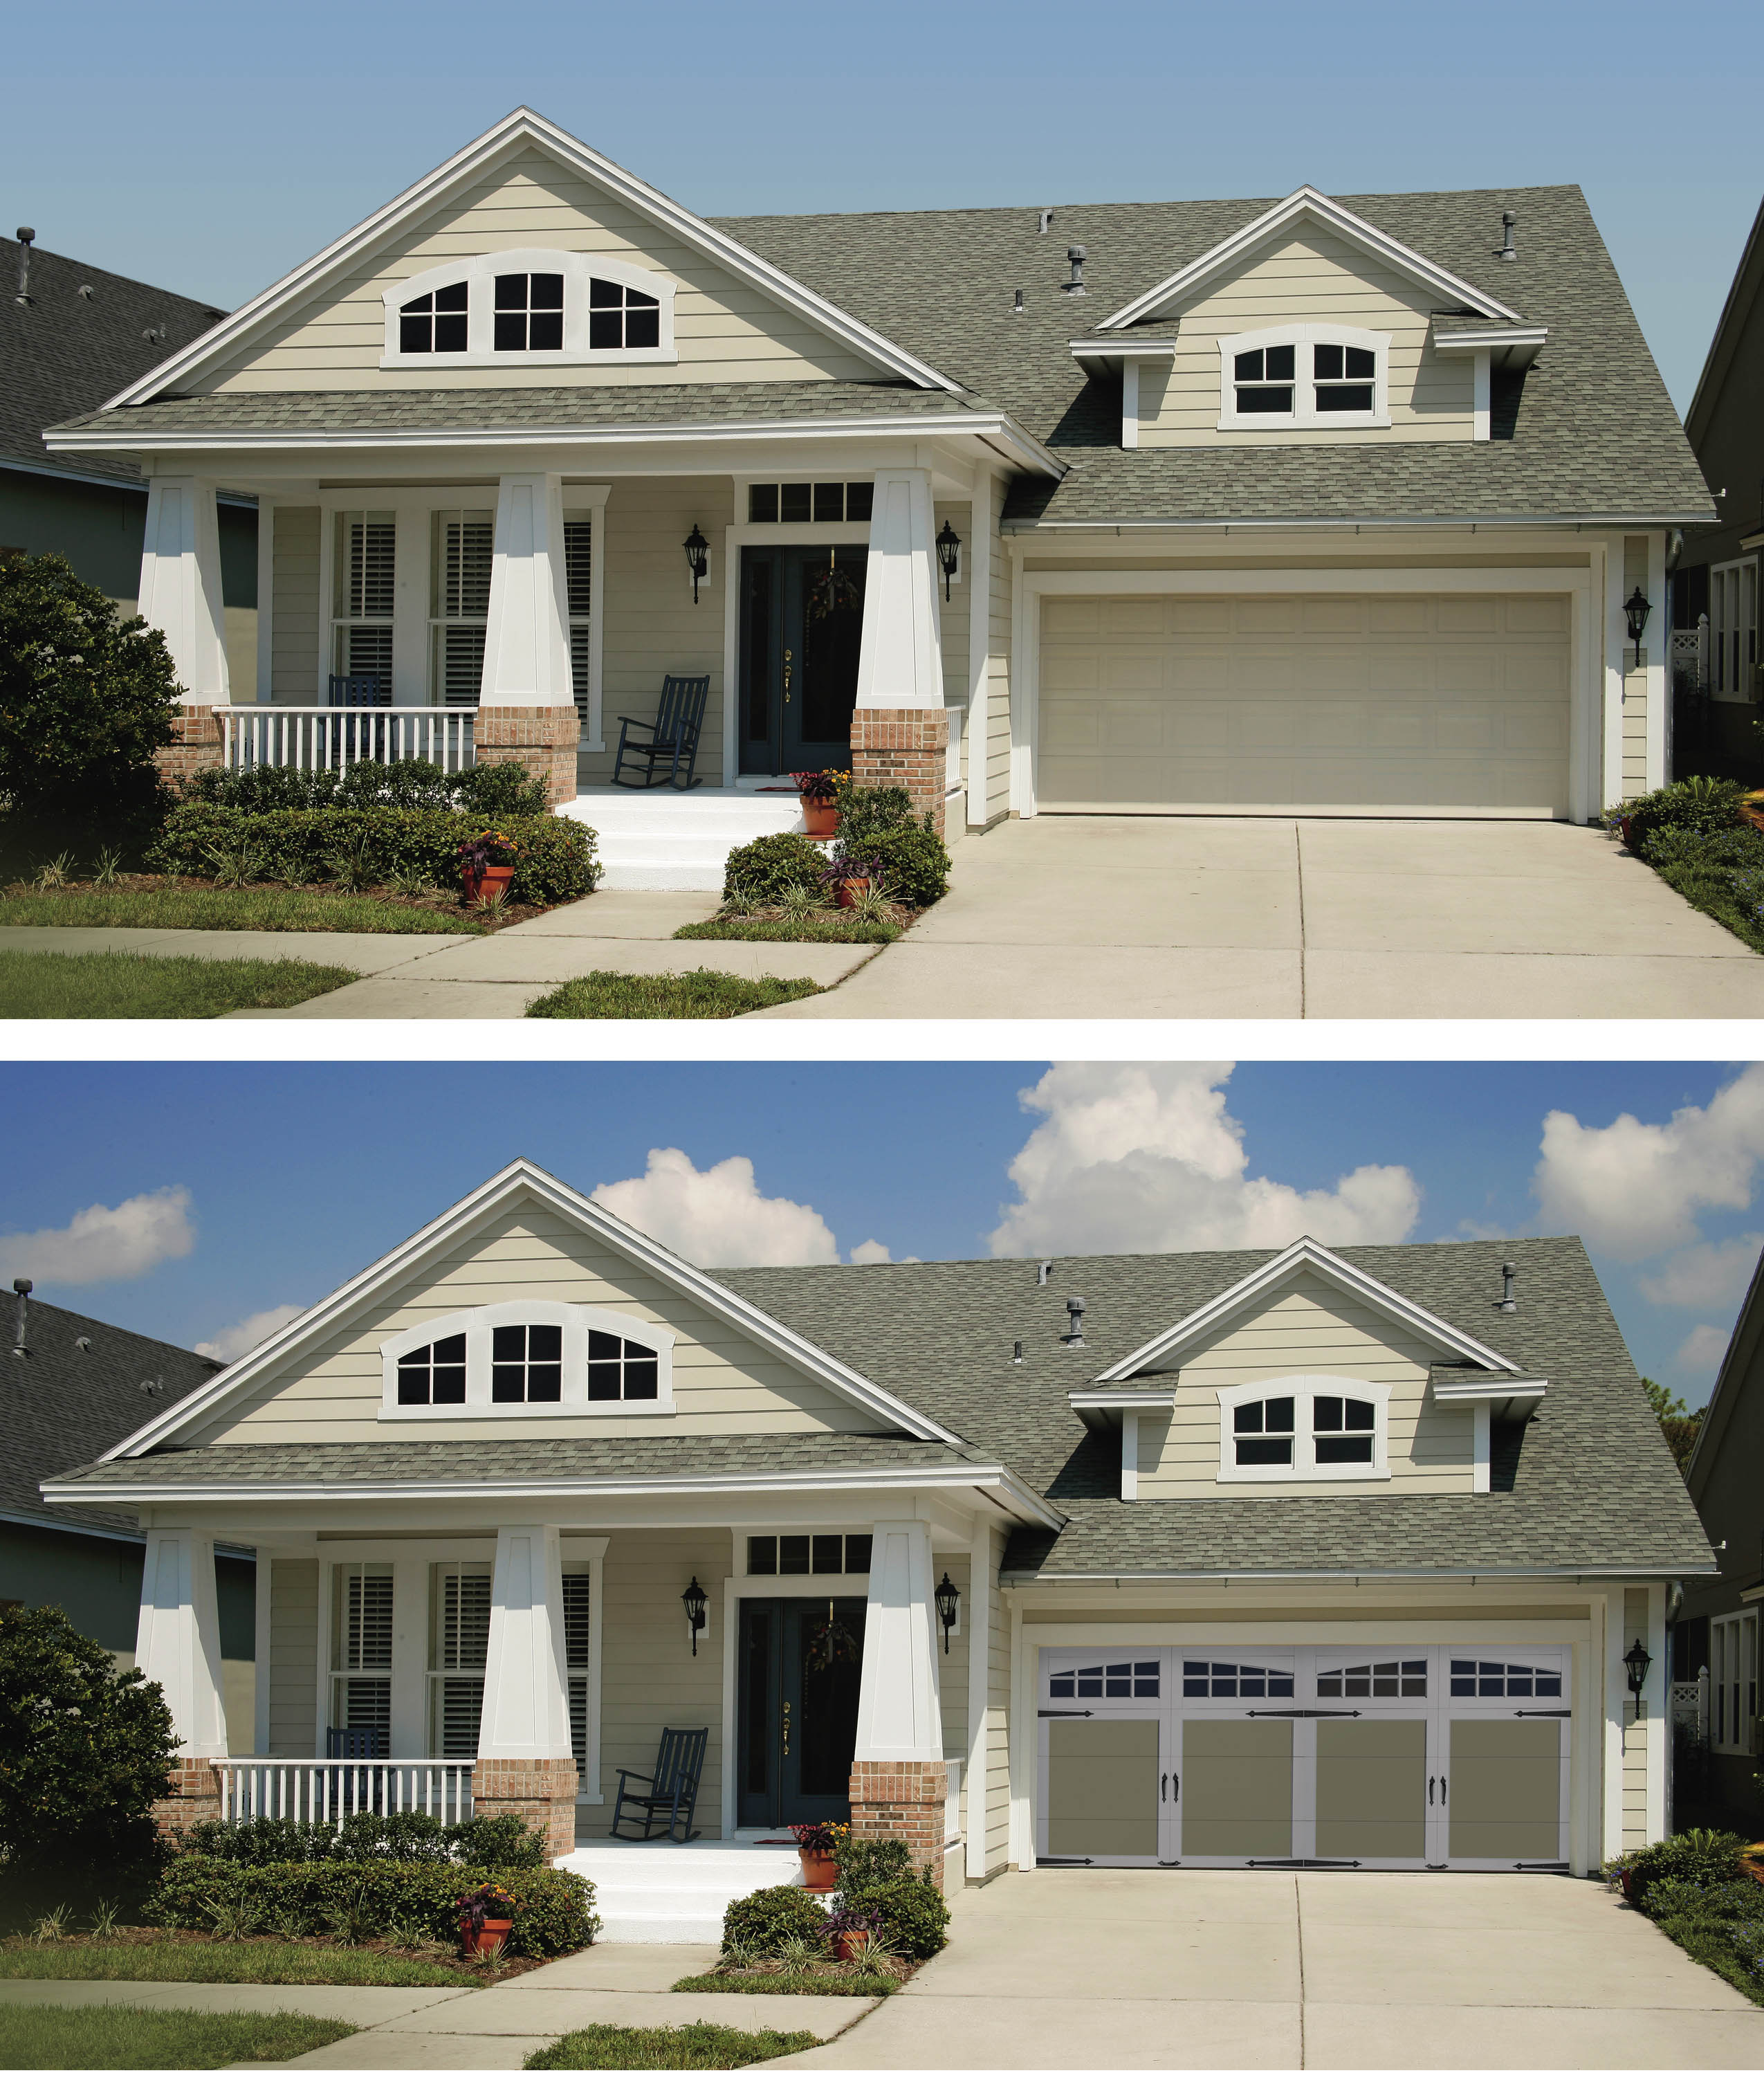 Garage Door Parts Near My Location Residential Garage Door Installation Service Fort Worth Texas